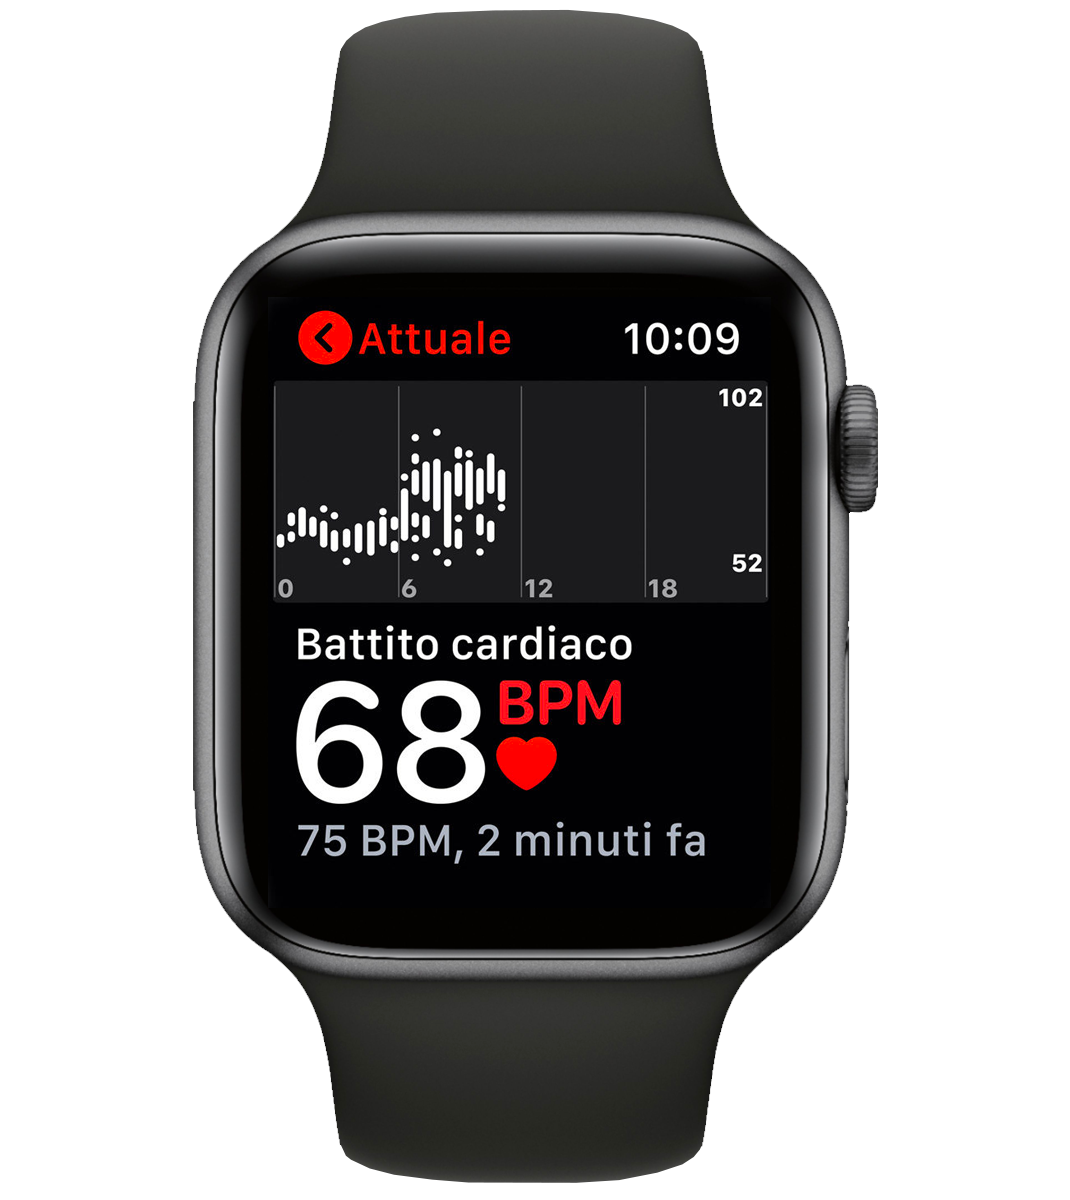 ECG Apple Watch immagine elettriocardiogramma